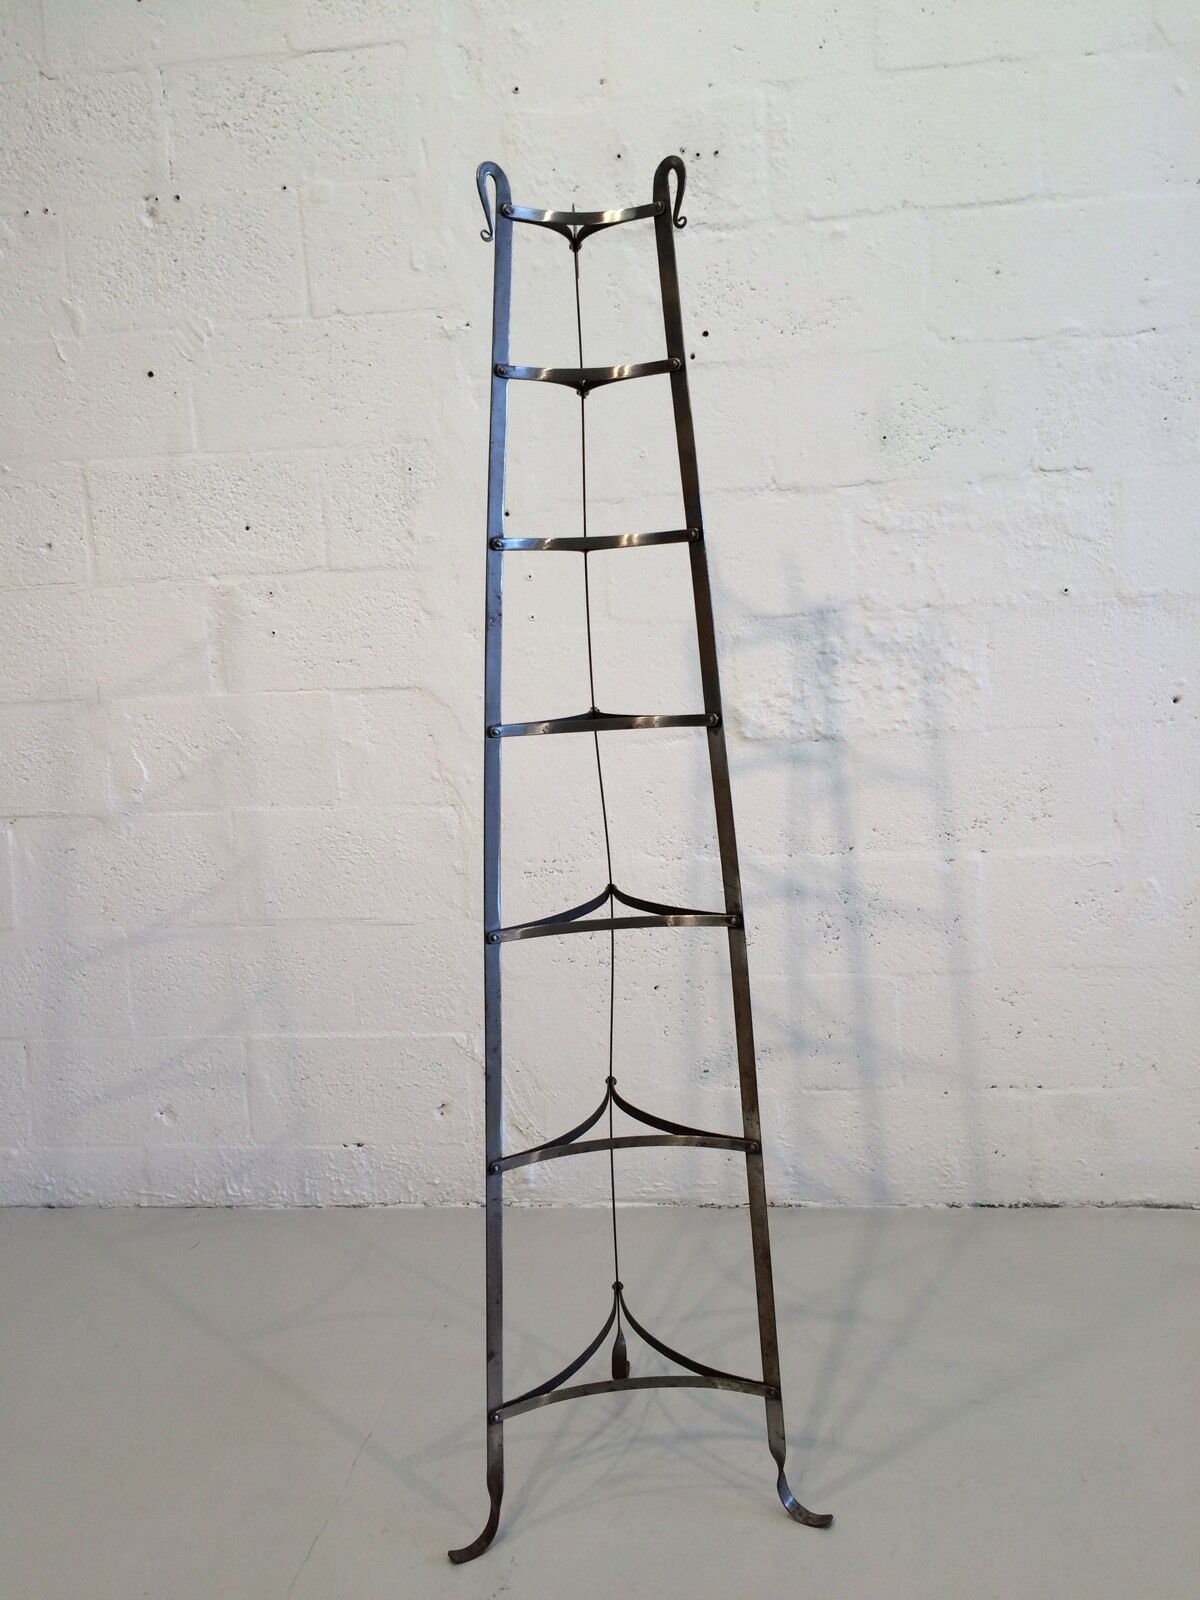 industrial hand-forged plant stand mixing bowl rack shelf 1930s metal